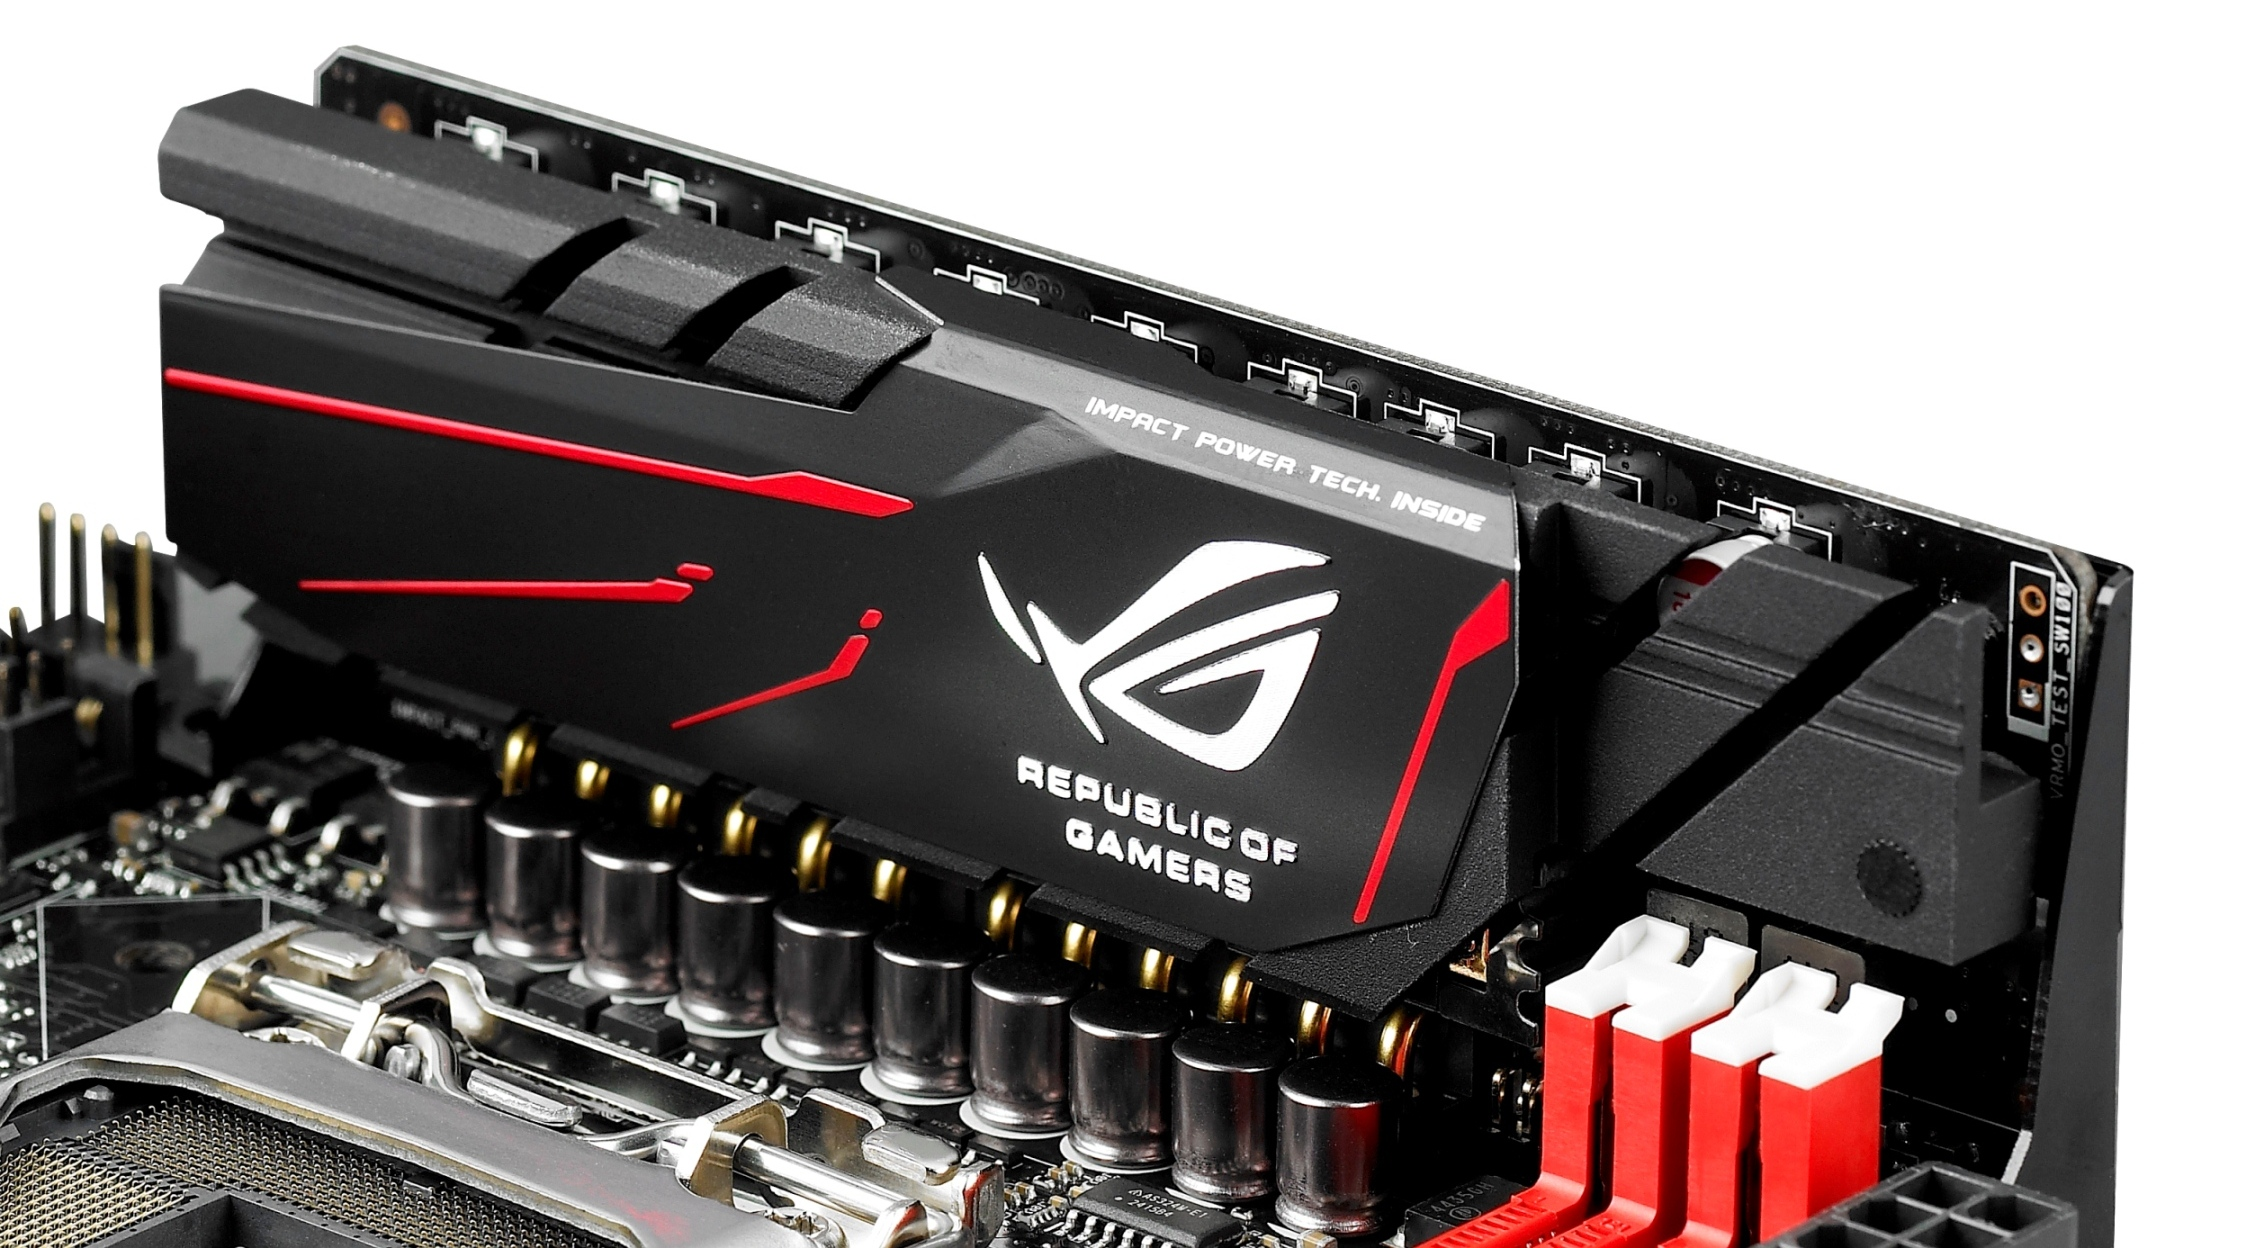 Asus maximus vi impact review rog and mini itx for Best impact windows reviews